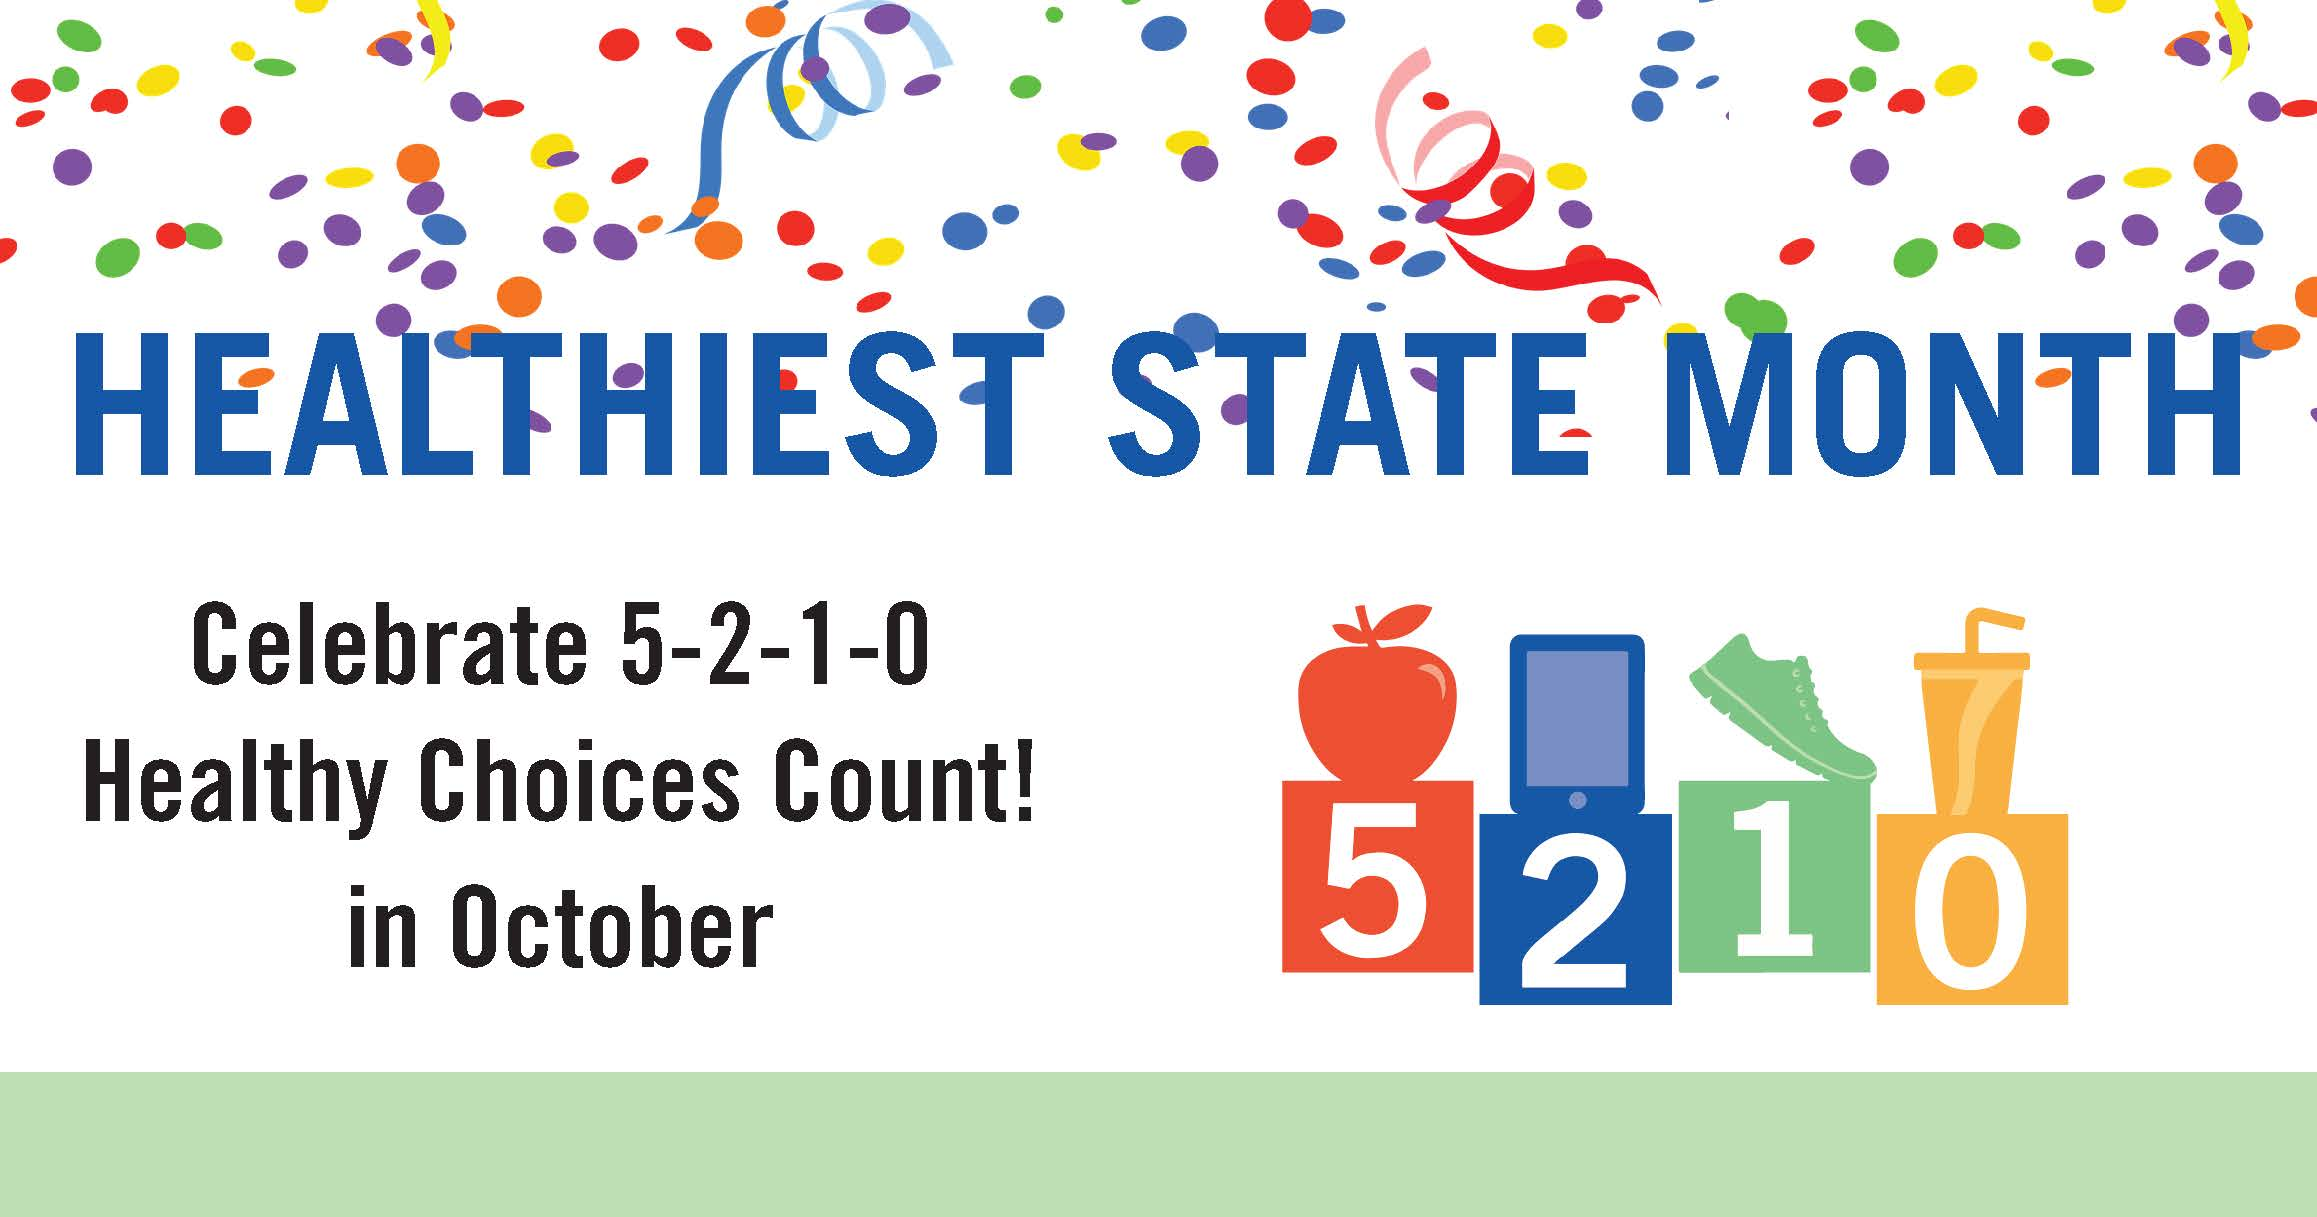 Celebrate Healthiest State Month in October